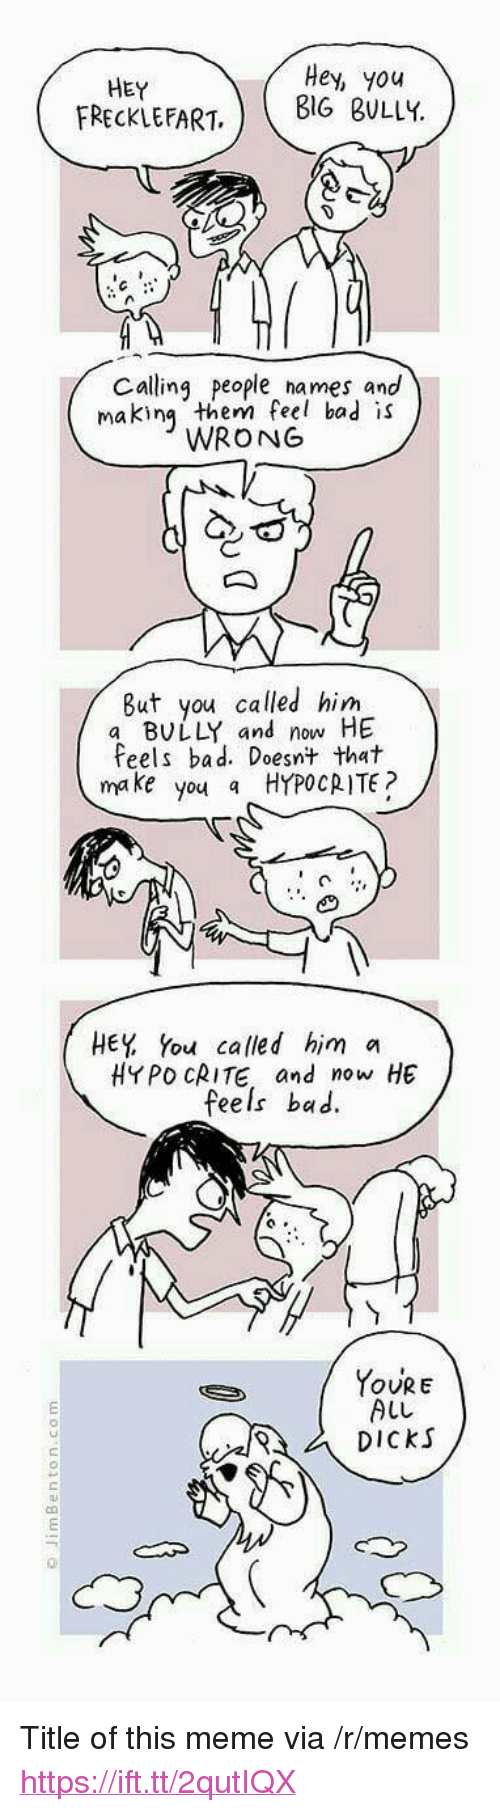 """You Called: HEY  FRECKLEFART  Hey, you  BIG BULLY  Calling people names and  makin them feel bad is  WRONG  But you called him  a BULLY and now HE  Feels bad. Doesnt that  make you a HYPOCRITE?  HEY You called him a  HYPO CRITE and now HE  feels bac.  YoURE  ALL  DiCkS  む <p>Title of this meme via /r/memes <a href=""""https://ift.tt/2qutIQX"""">https://ift.tt/2qutIQX</a></p>"""